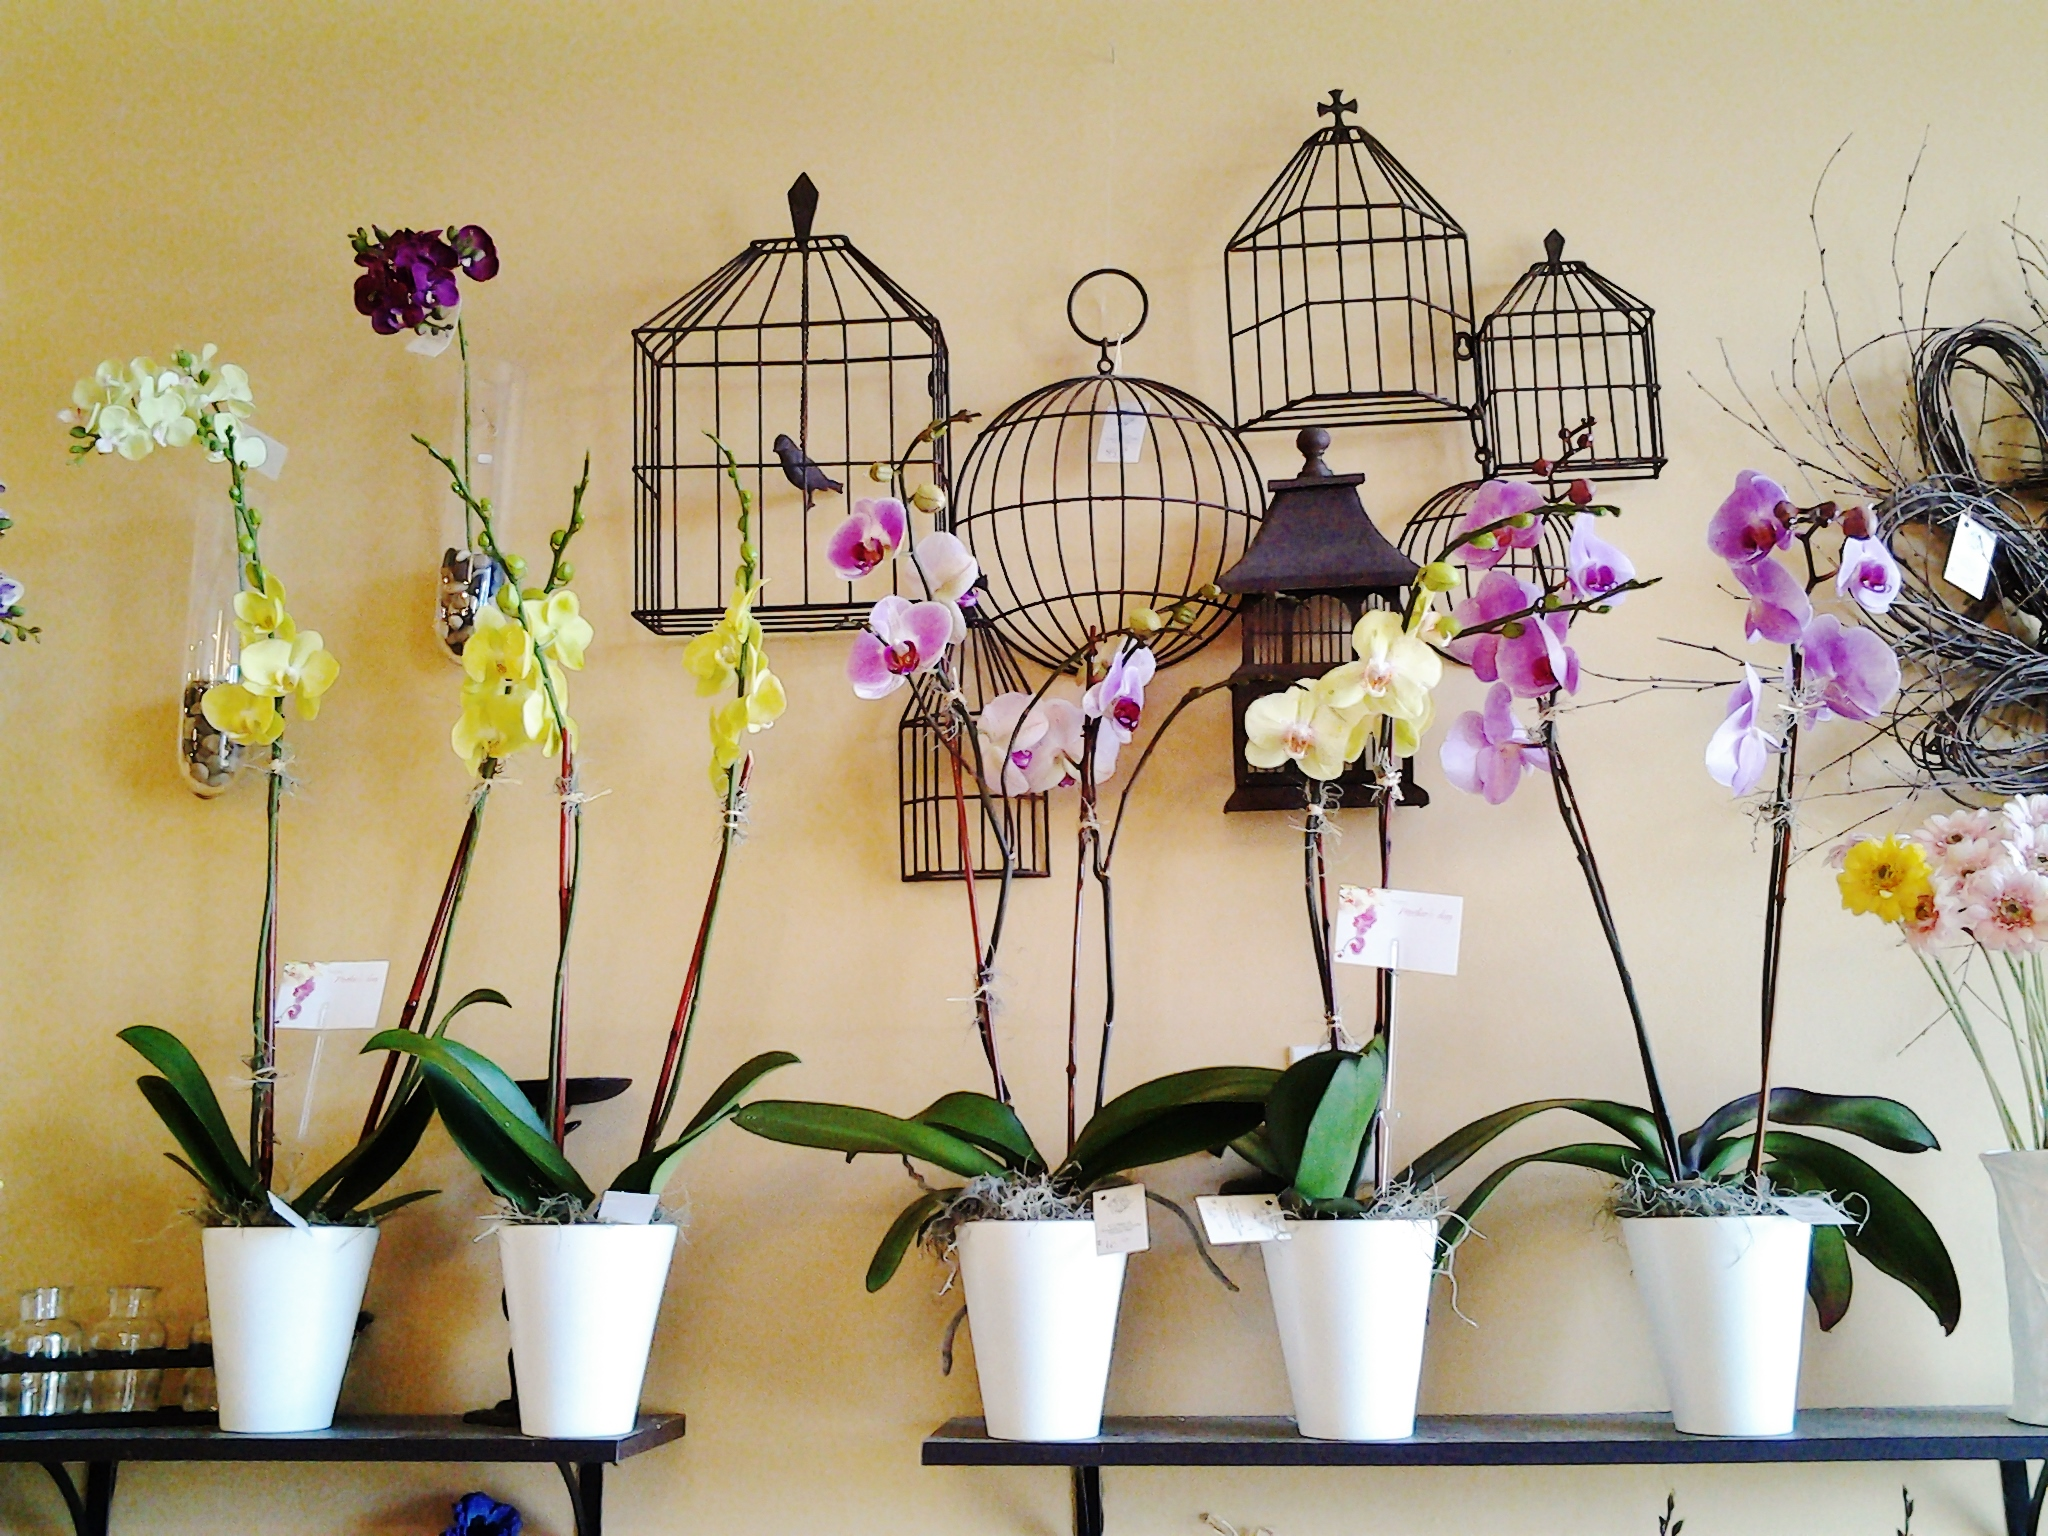 C3 $65-$85 double-spike orchids. $65 as shown.